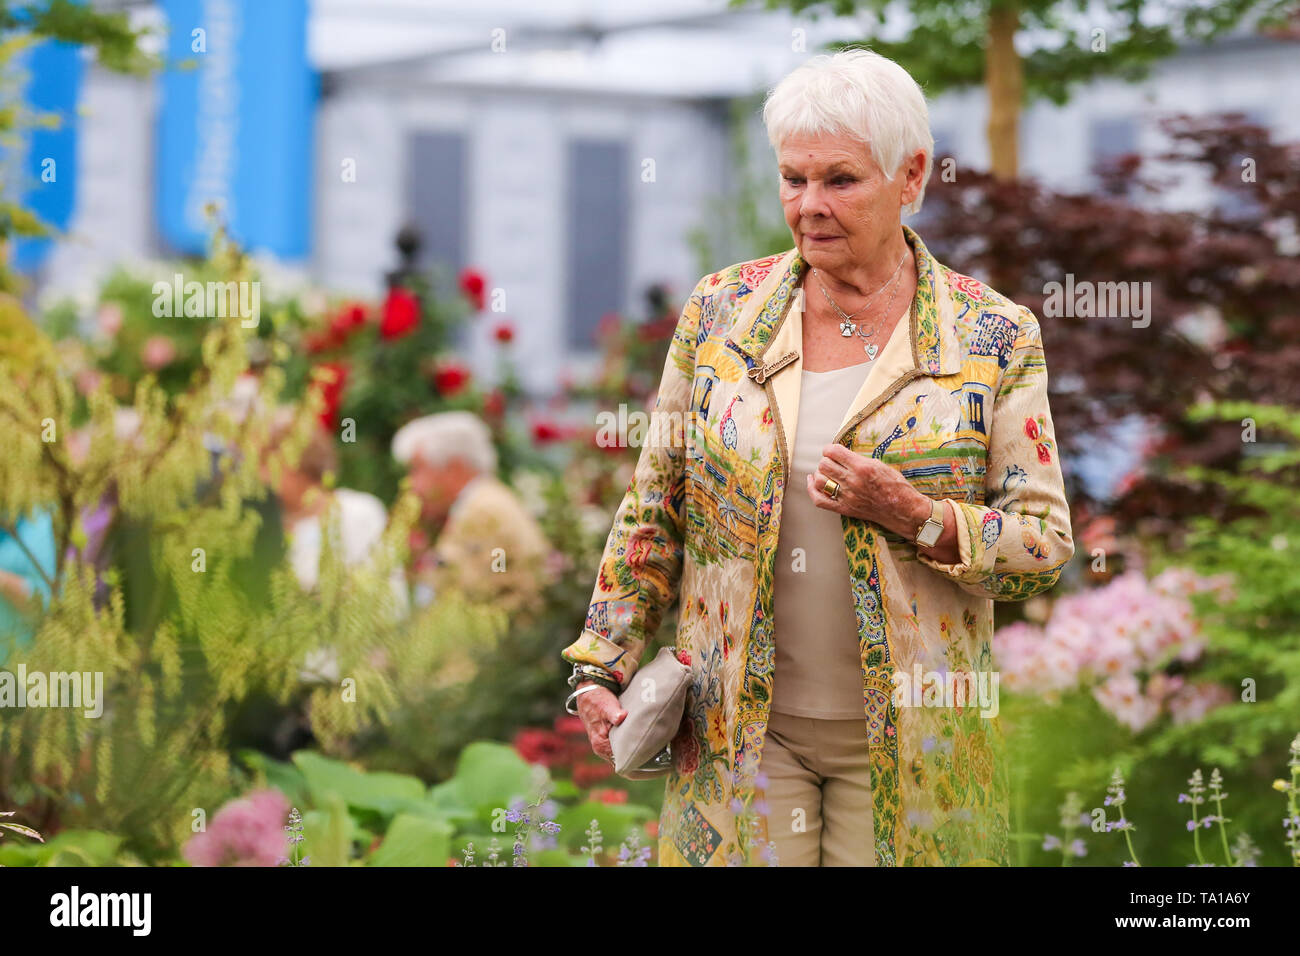 Dame Judith Dench is seen at the Hillier Nurseries.  The Royal Horticultural Society Chelsea Flower Show is an annual garden show over five days in the grounds of the Royal Hospital Chelsea in West London. The show is open to the public from 21 May until 25 May 2019.    Dame Judith Dench seen during the Chelsea Flower Show. The Royal Horticultural Society Chelsea Flower Show is an annual garden show over five days in the grounds of the Royal Hospital Chelsea in West London. The show is open to the public from 21 May until 25 May 2019. Stock Photo